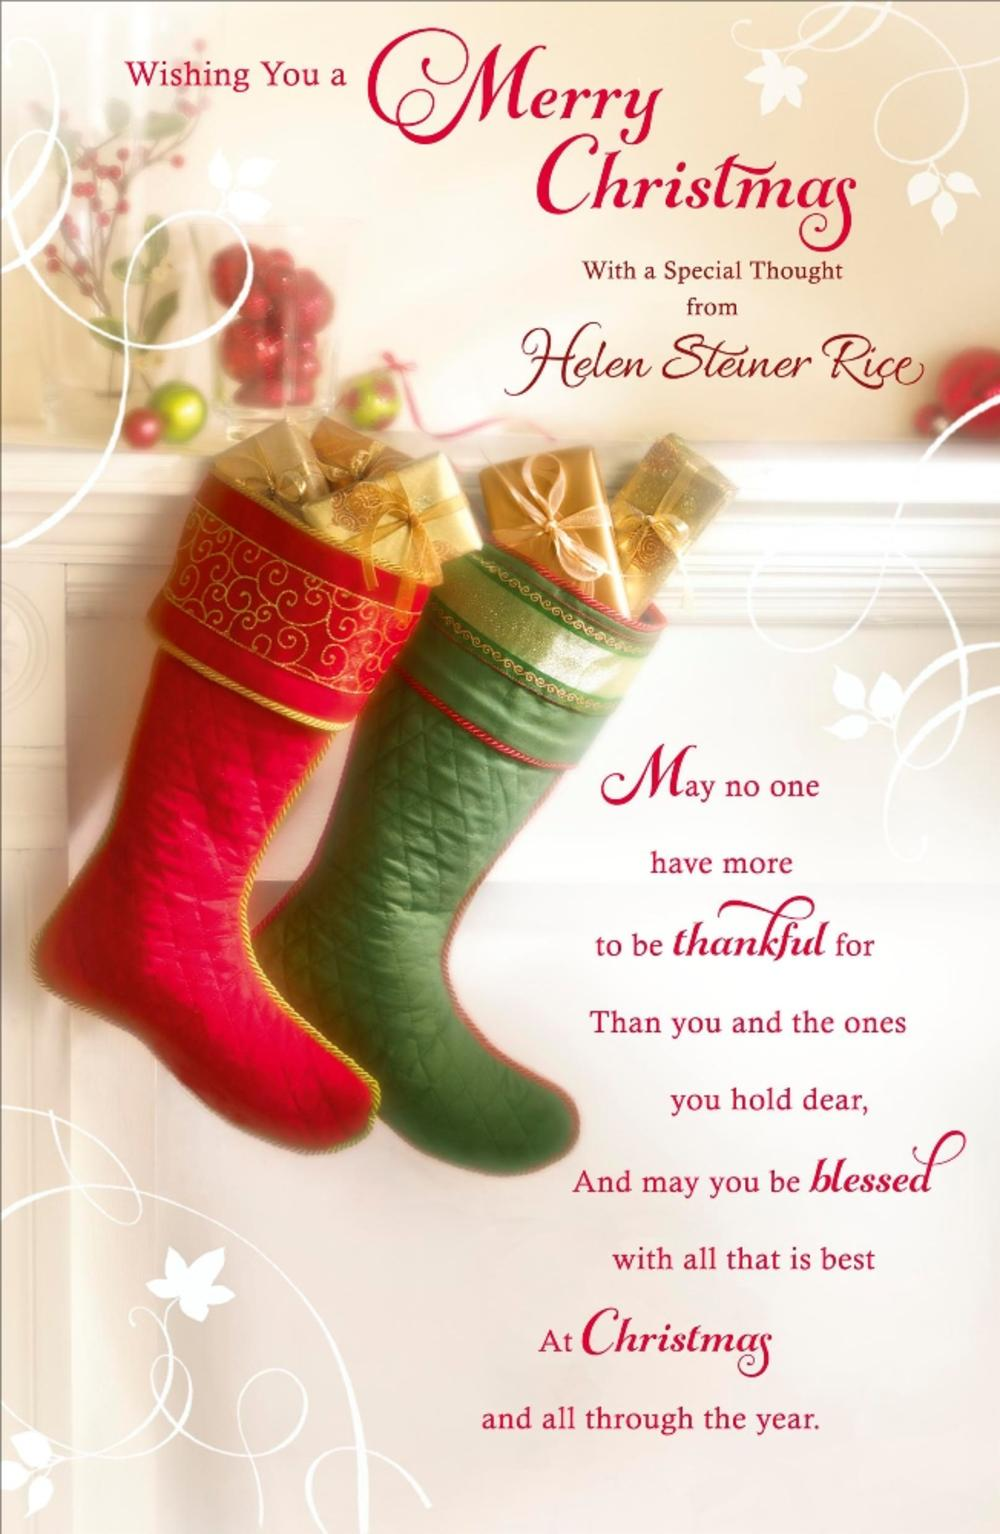 Religious Christmas Images.Helen Steiner Rice Religious Christmas Greeting Card